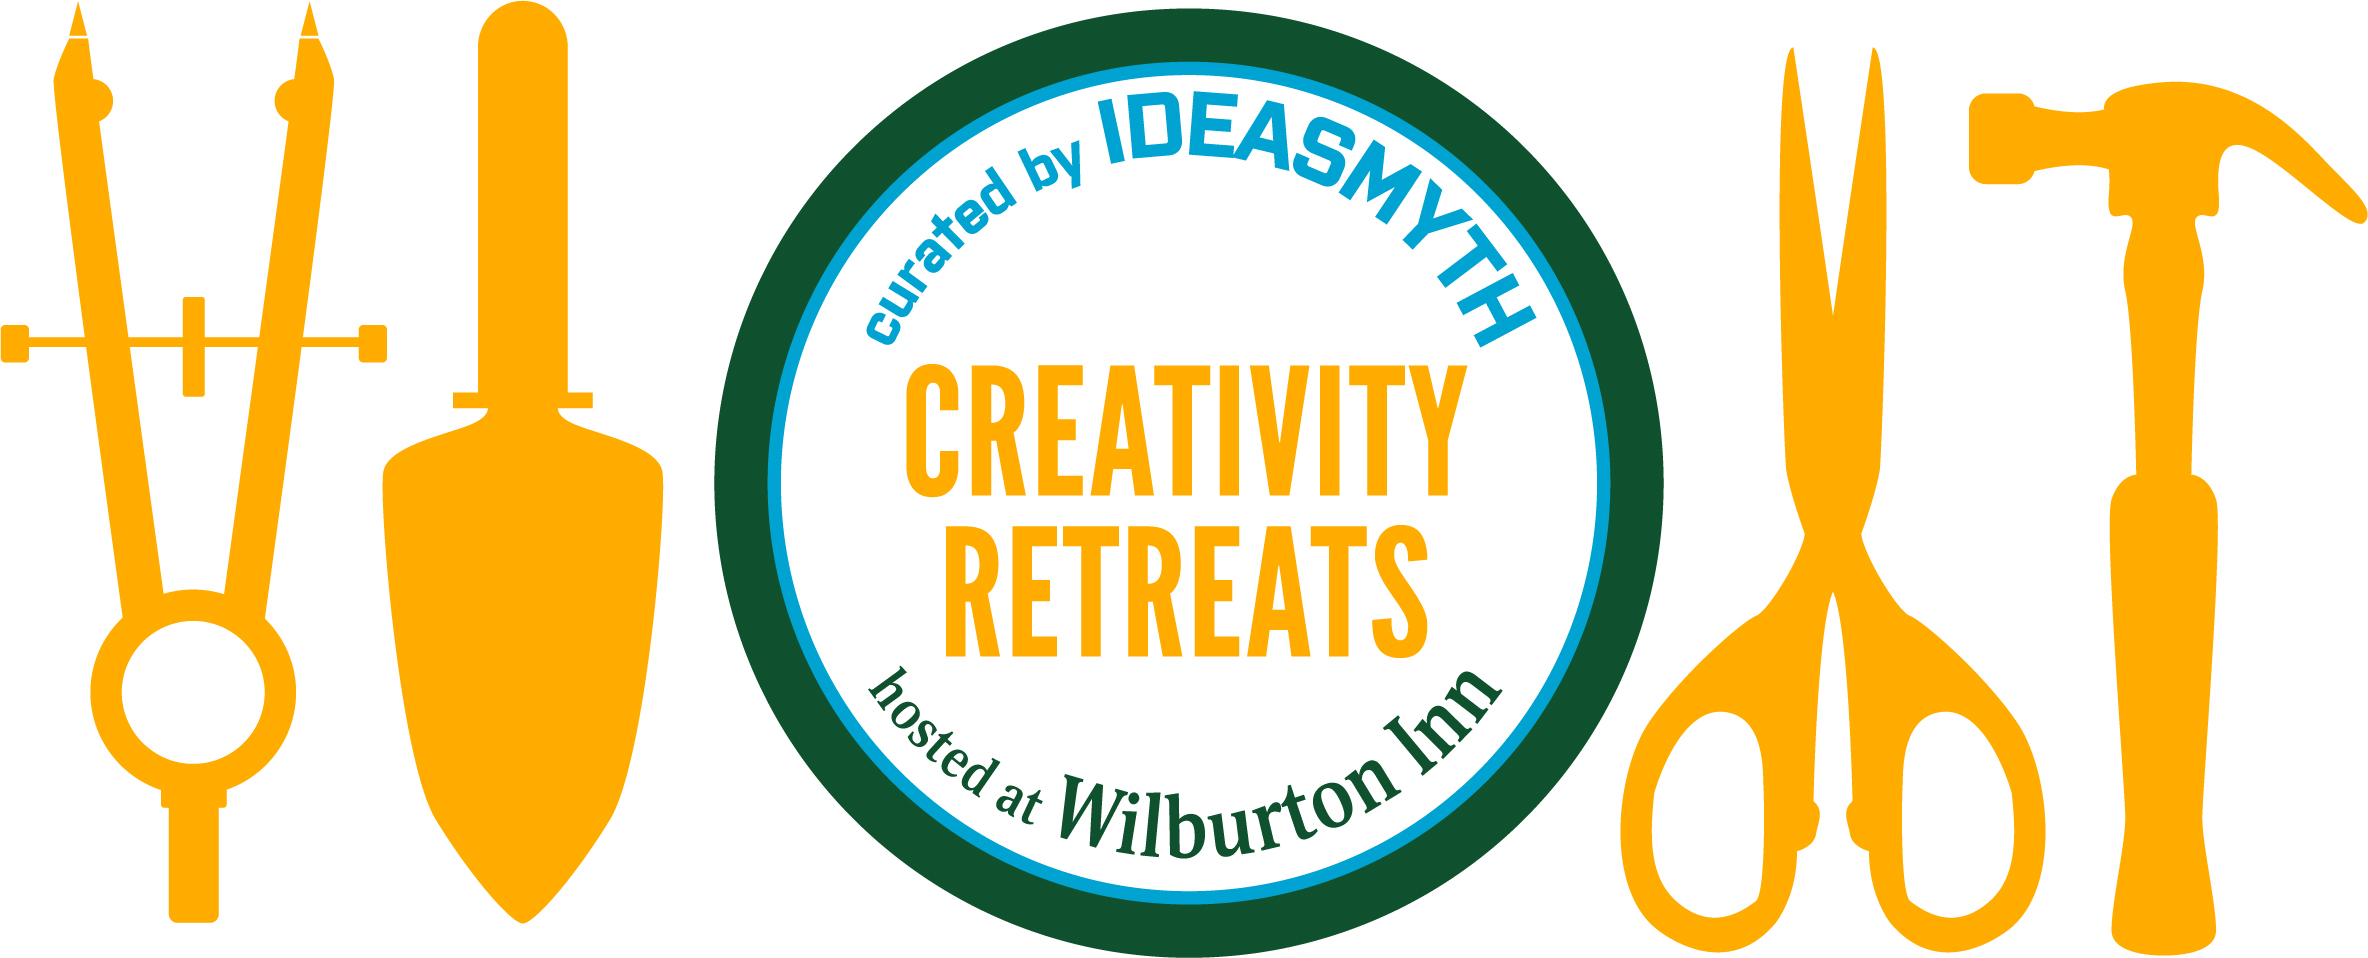 CreativityRetreats_OrangeTools_CircularType_HighestResolutionImage